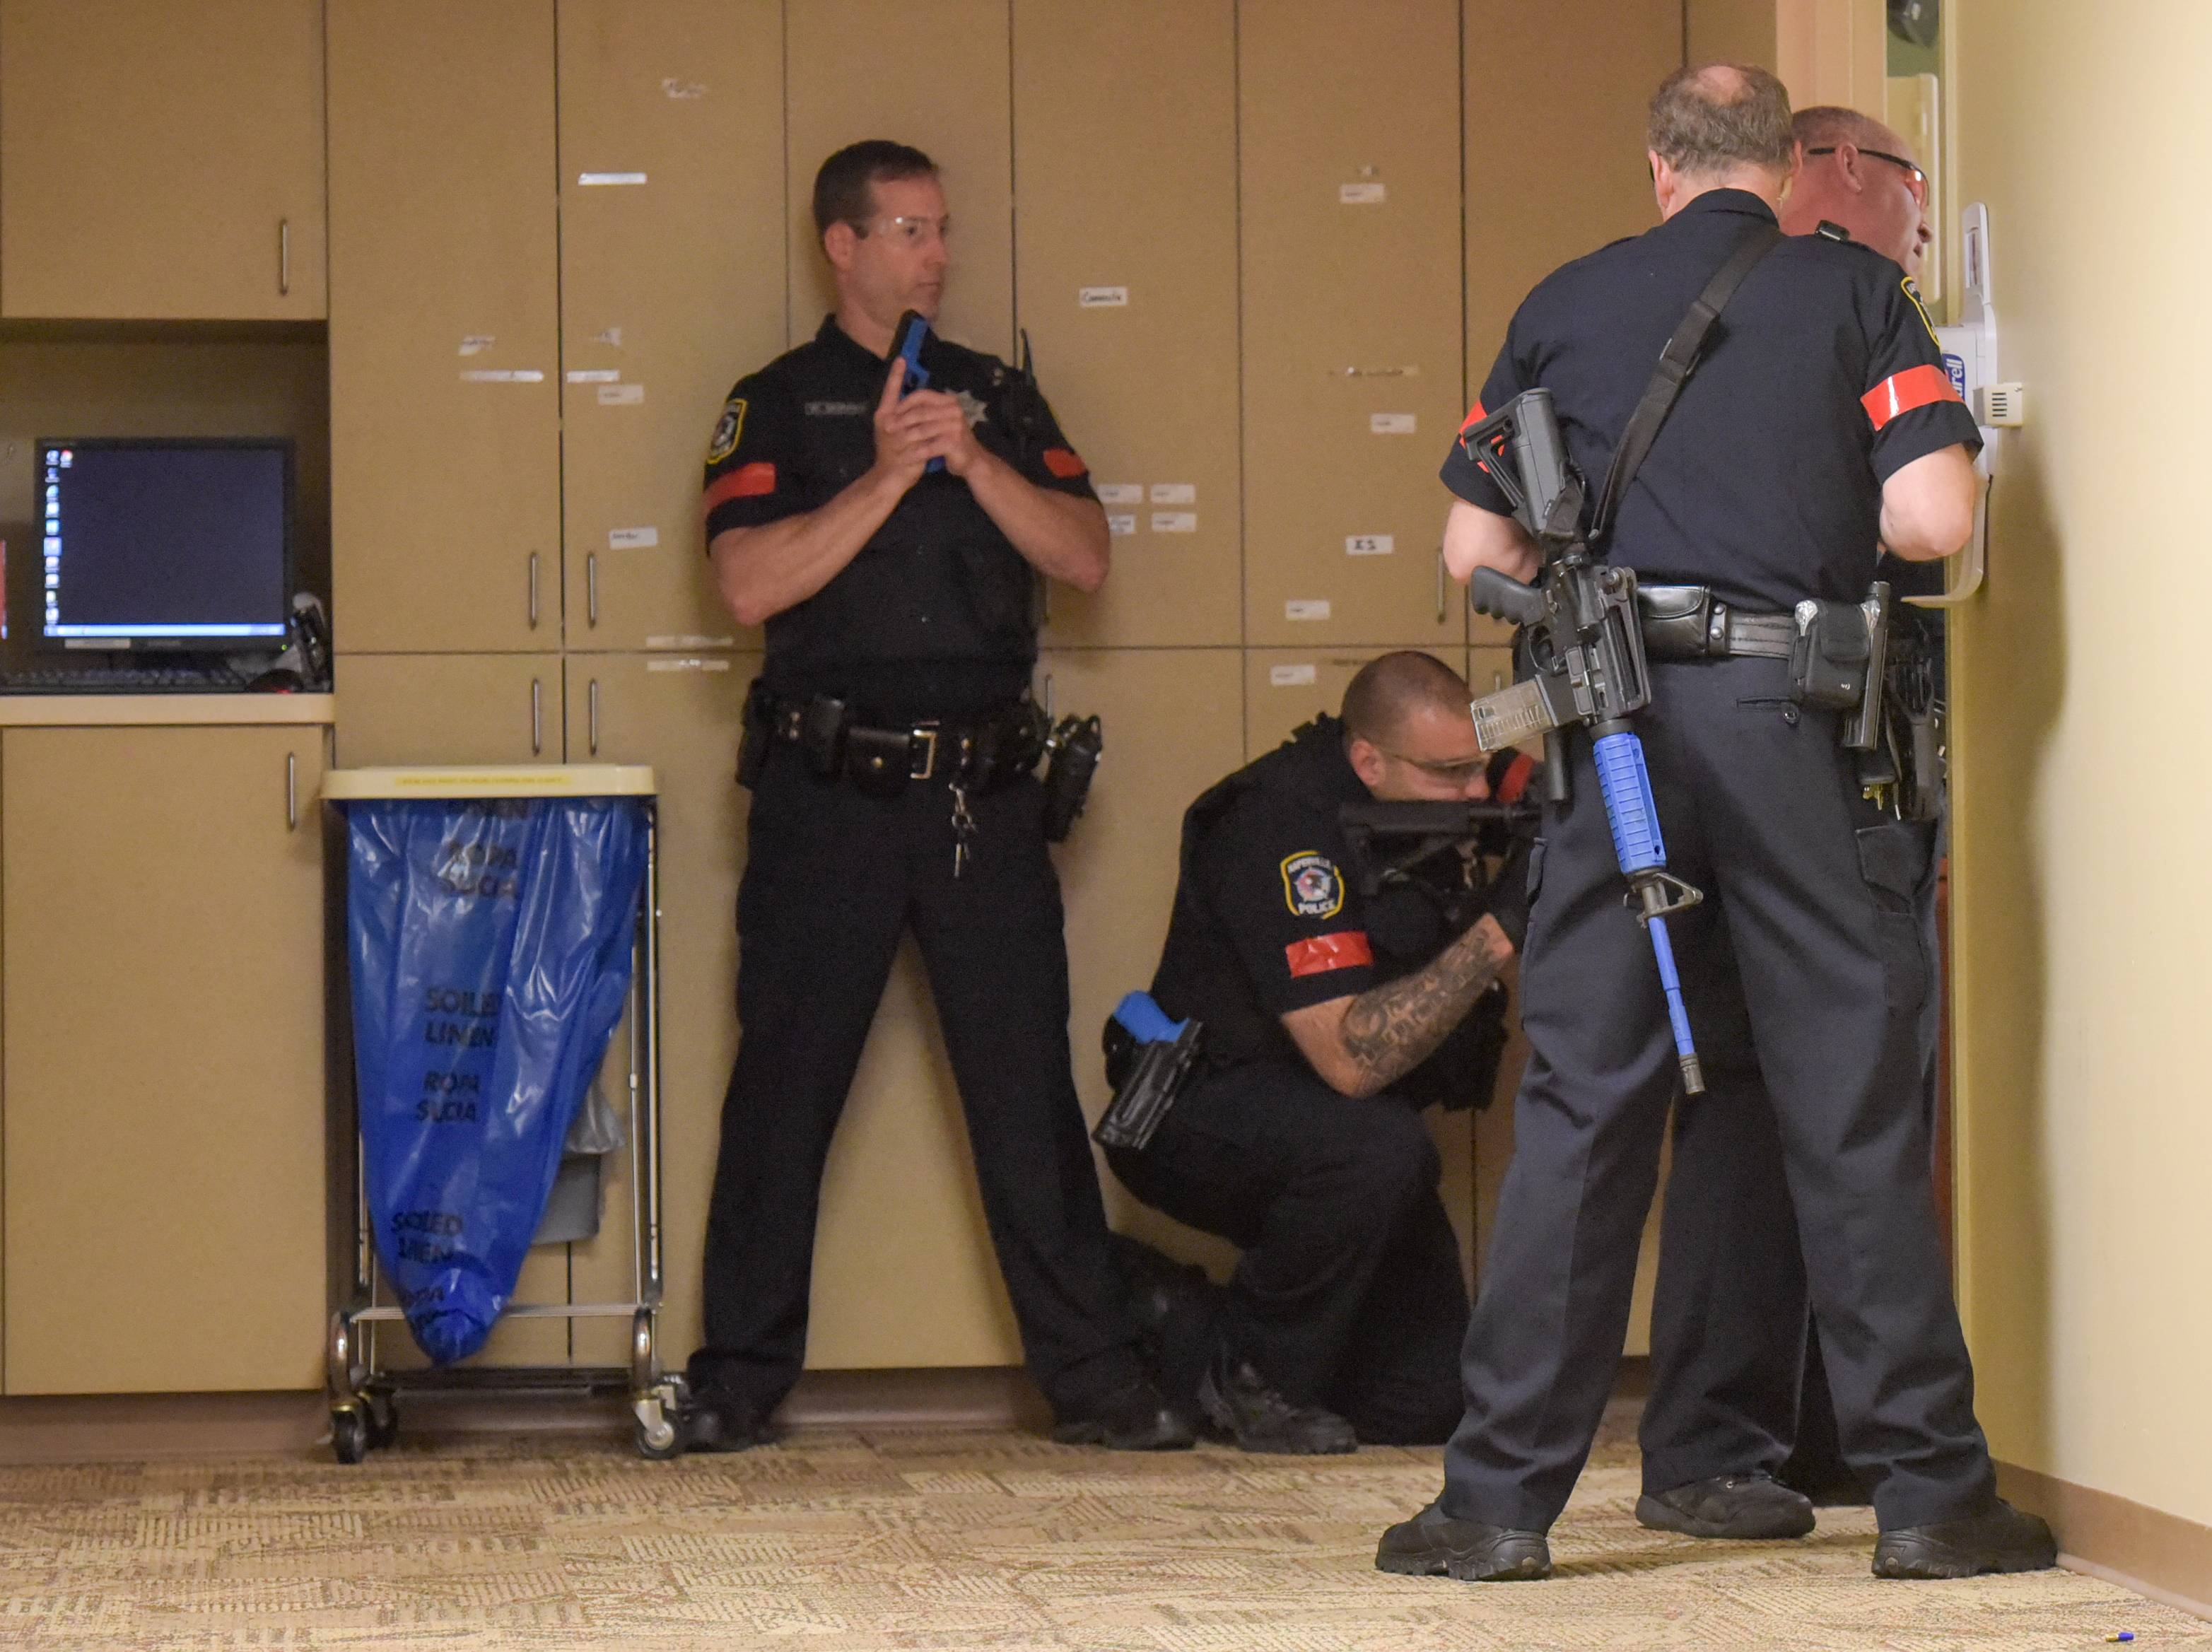 Naperville police guard the door of a hospital room where the suspect had barricaded himself in an active shooter drill Thursday morning at Edward Hospital.